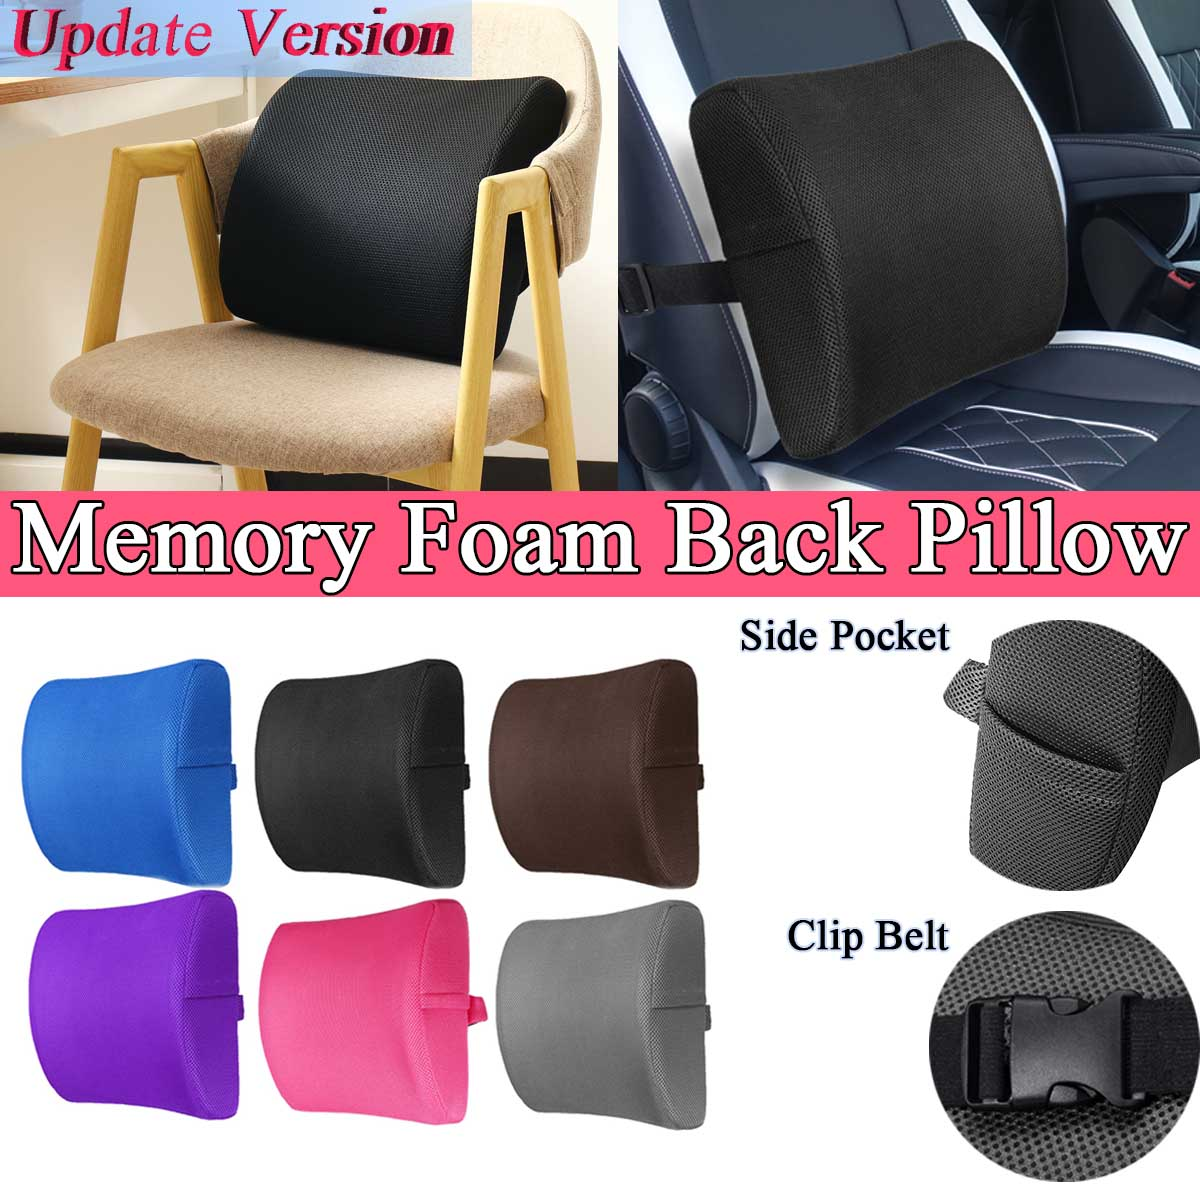 6 Color Soft Memory Foam Car Seat Winter Pillows Lumbar Support Back Massager Waist Cushion For Chairs Home Office Relieve Pain6 Color Soft Memory Foam Car Seat Winter Pillows Lumbar Support Back Massager Waist Cushion For Chairs Home Office Relieve Pain